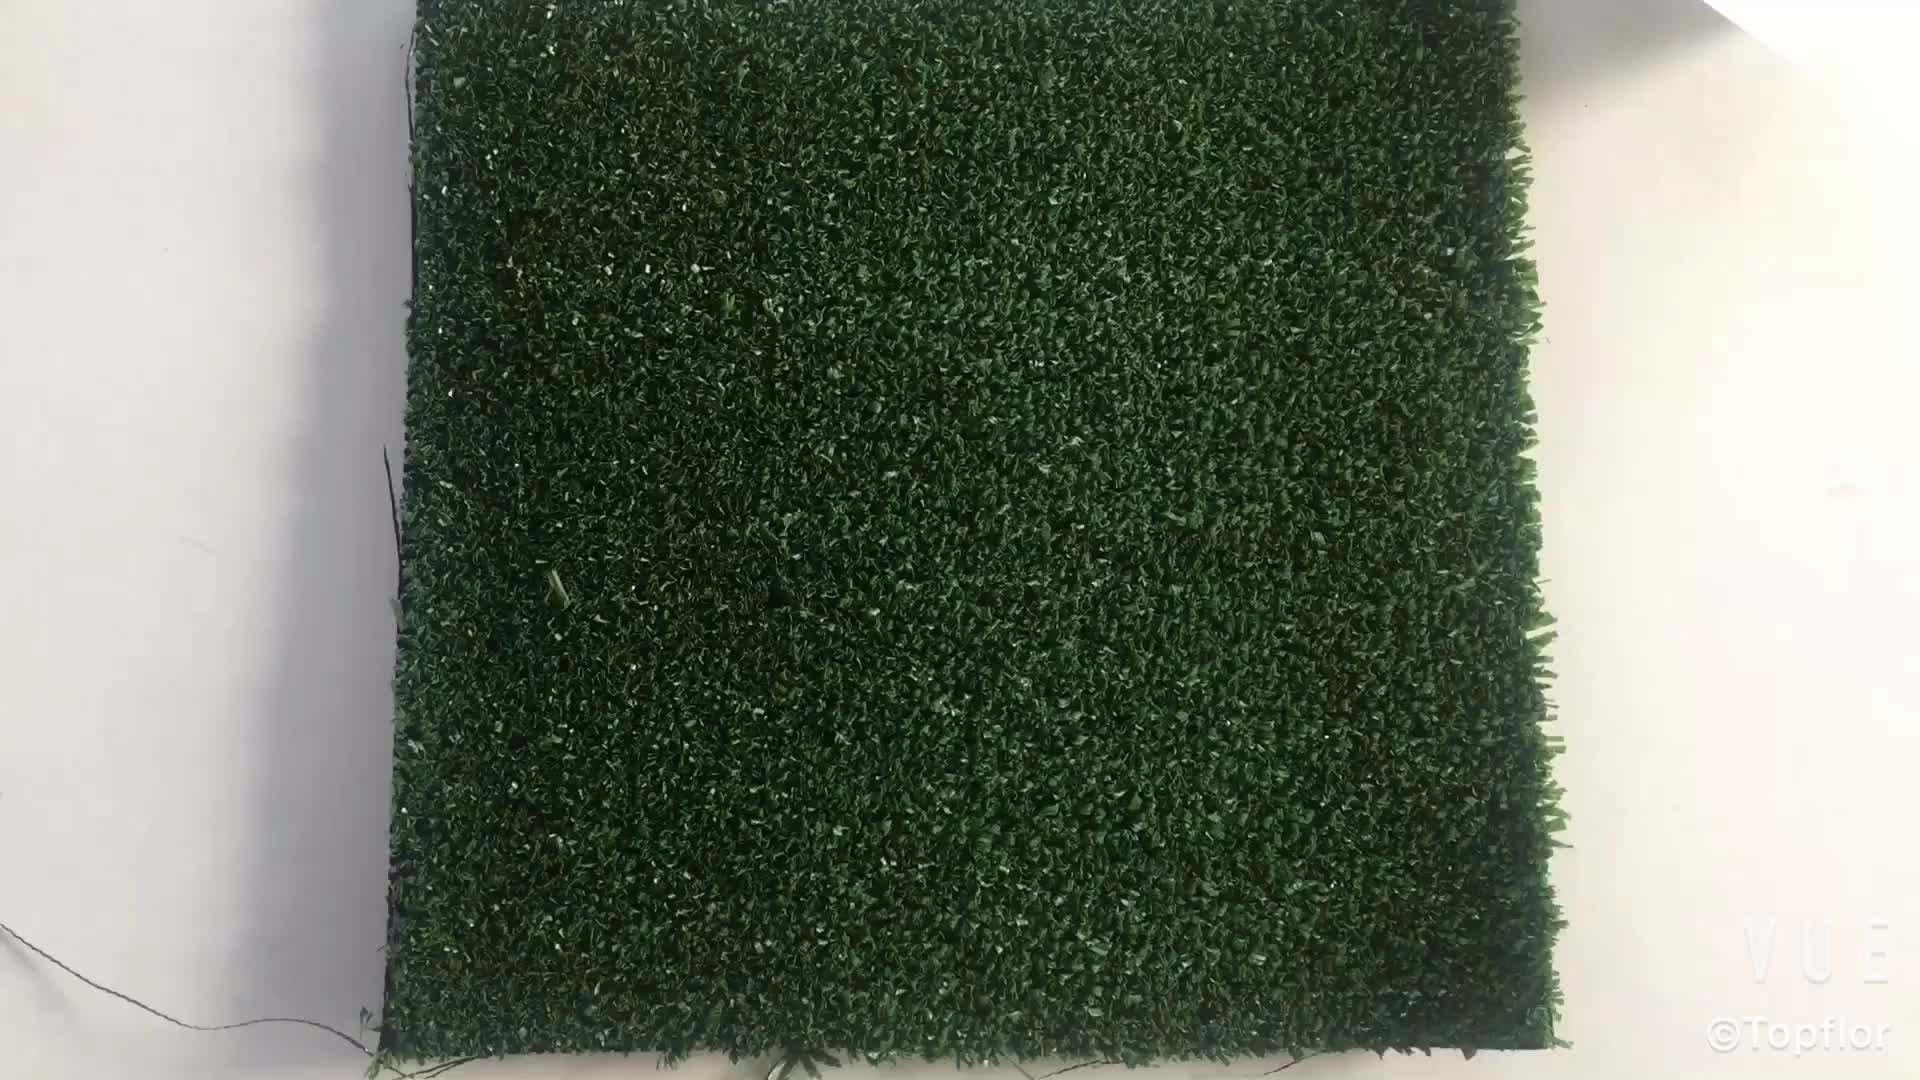 Fake Grass Prices Fake Artificial Grass Rug Synthetic Lawn Mat Turf 60cm